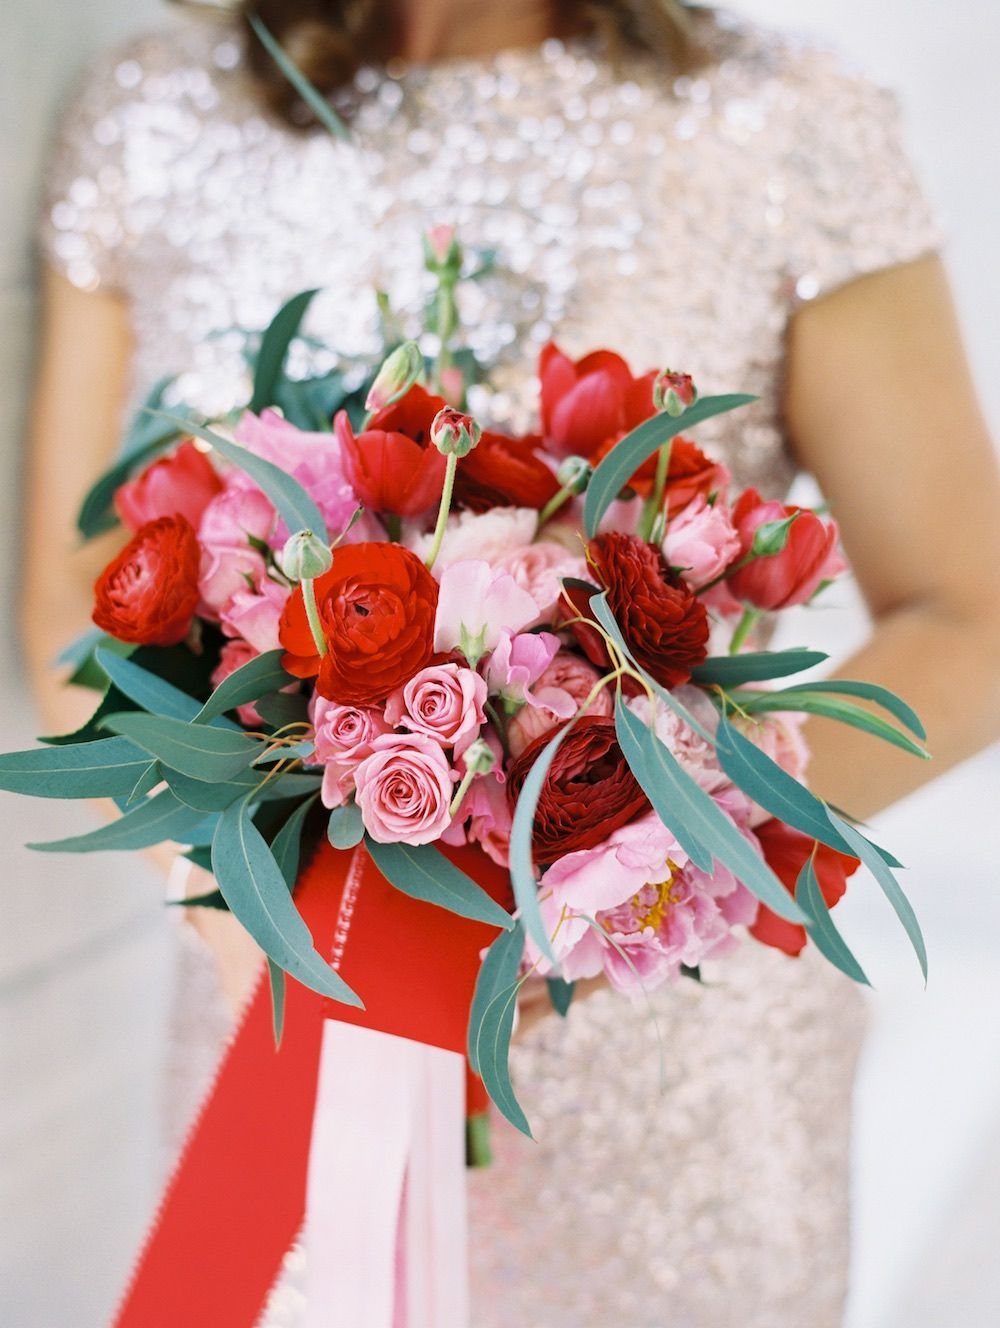 Romantic Black And White Washington Dc Wedding With Pink And Red